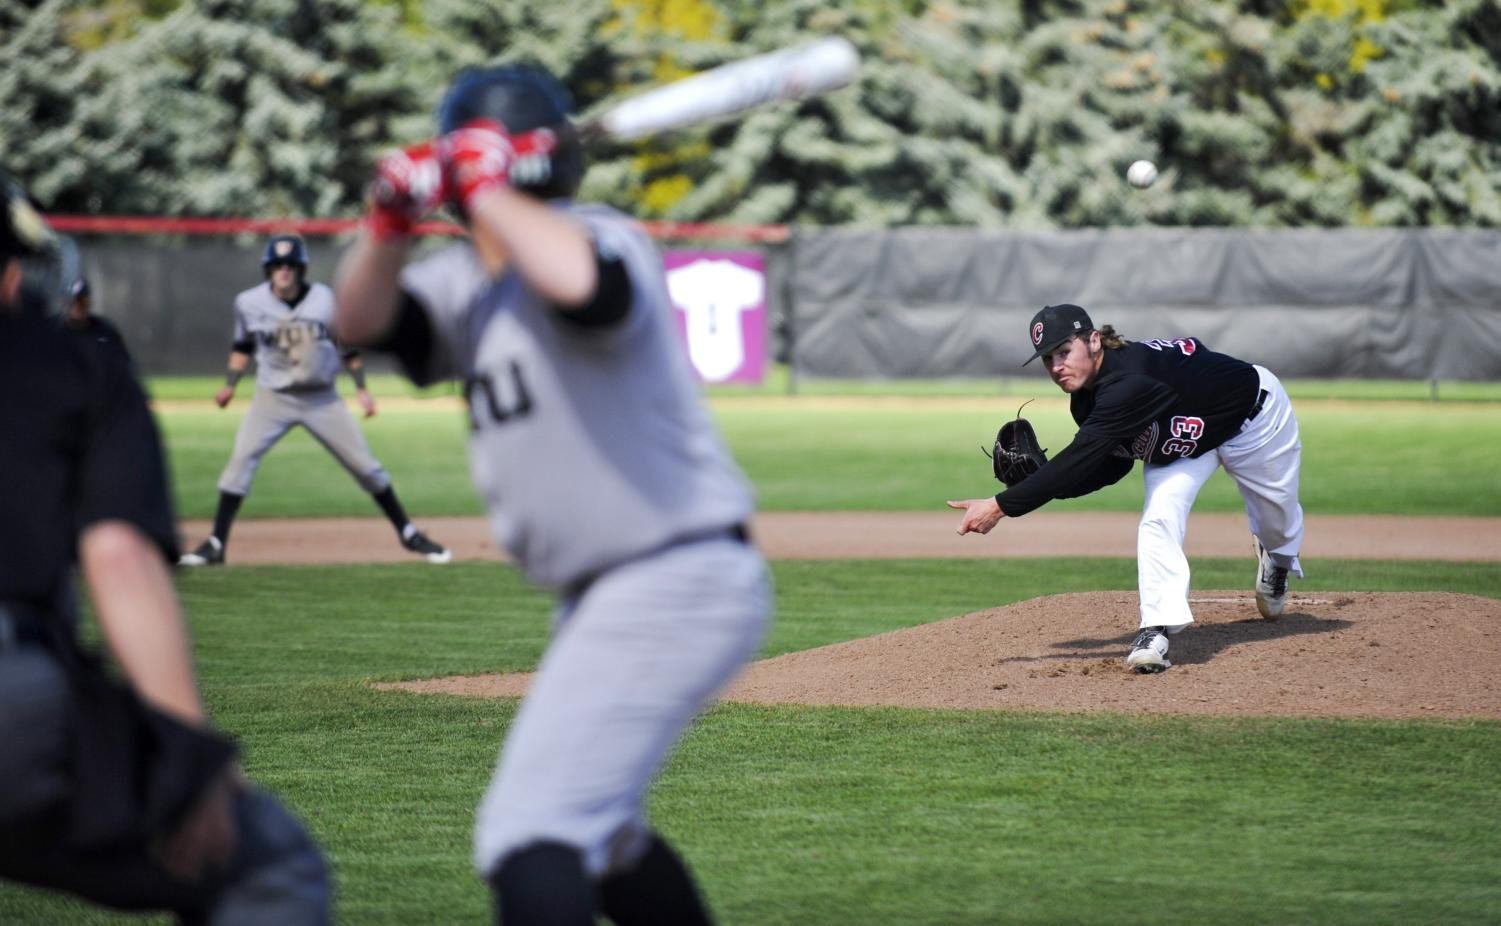 Mackenzie Gaul throws a pitch during a CWU home baseball game last season. Gaul is entering his final season as a Wildcat.